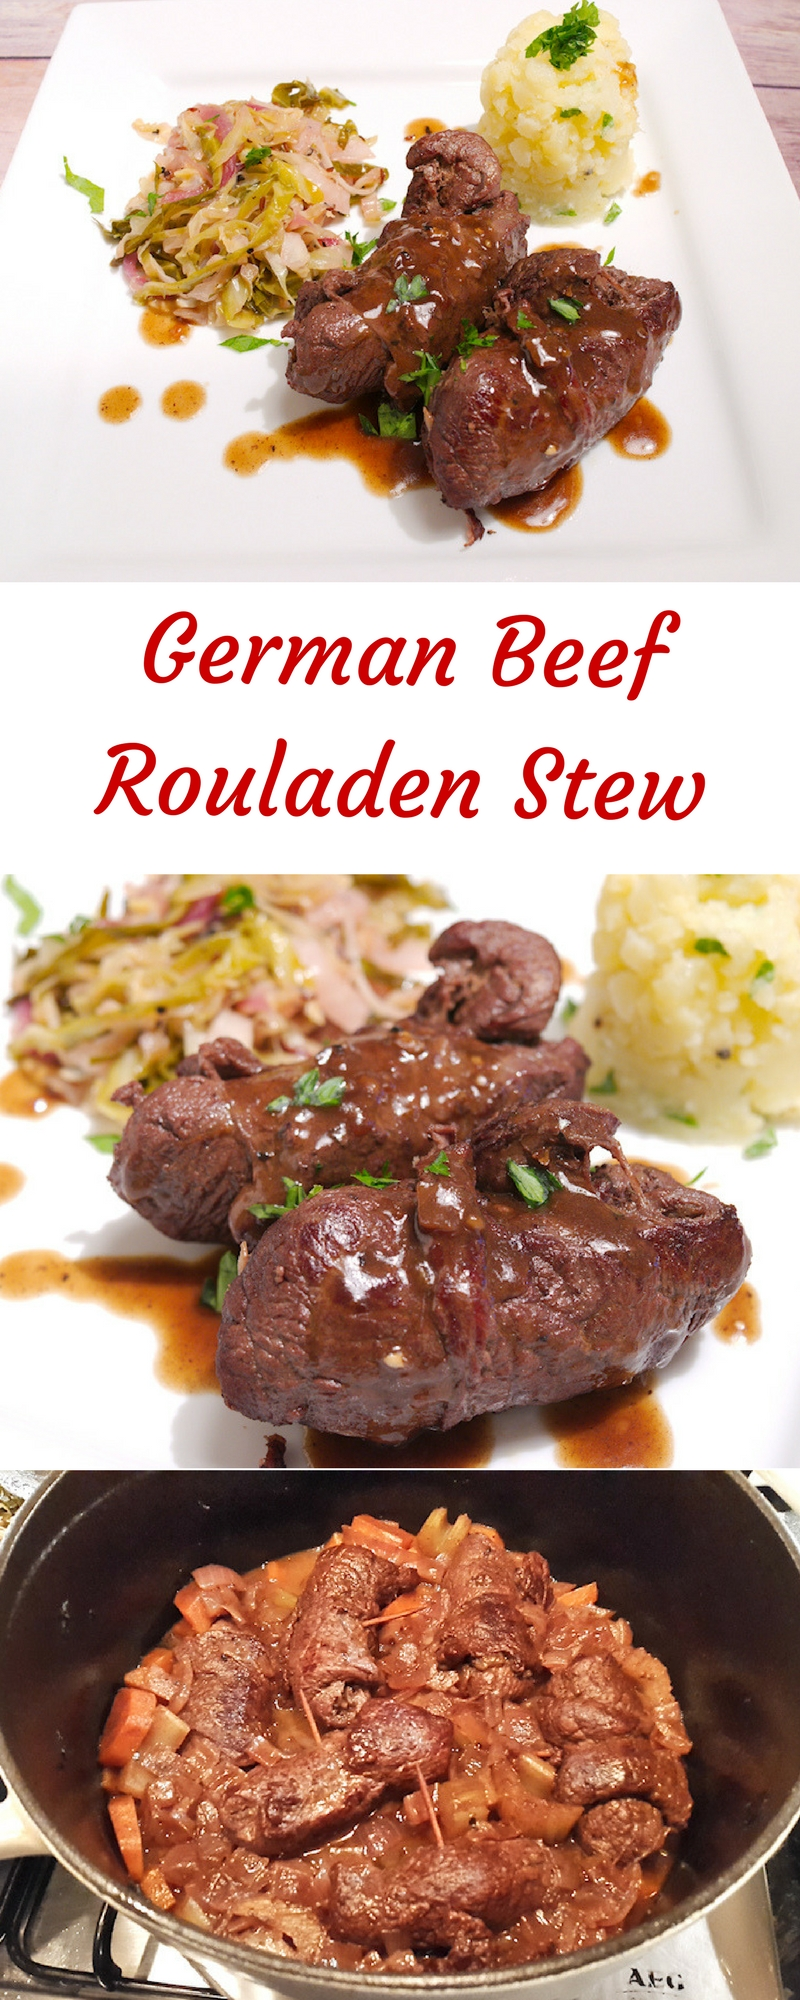 German Beef Rouladen Stew